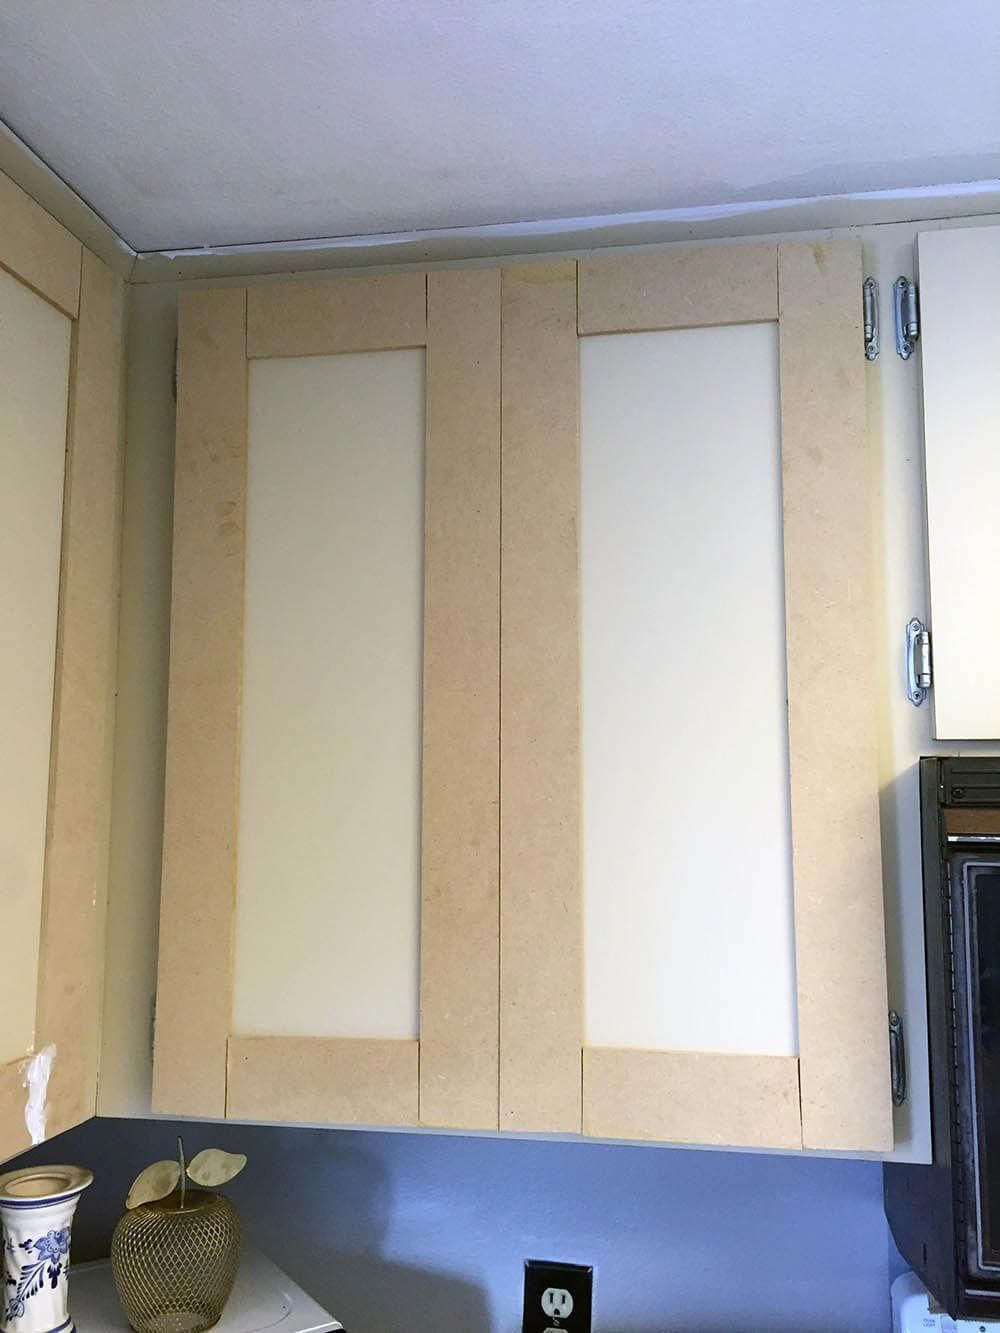 Update Your 80s Laminate Cabinets With Classic Shaker Style Doors Diy Your Kitchen Upgrade With This B Diy Cabinet Doors Laminate Cabinets Diy Kitchen Remodel